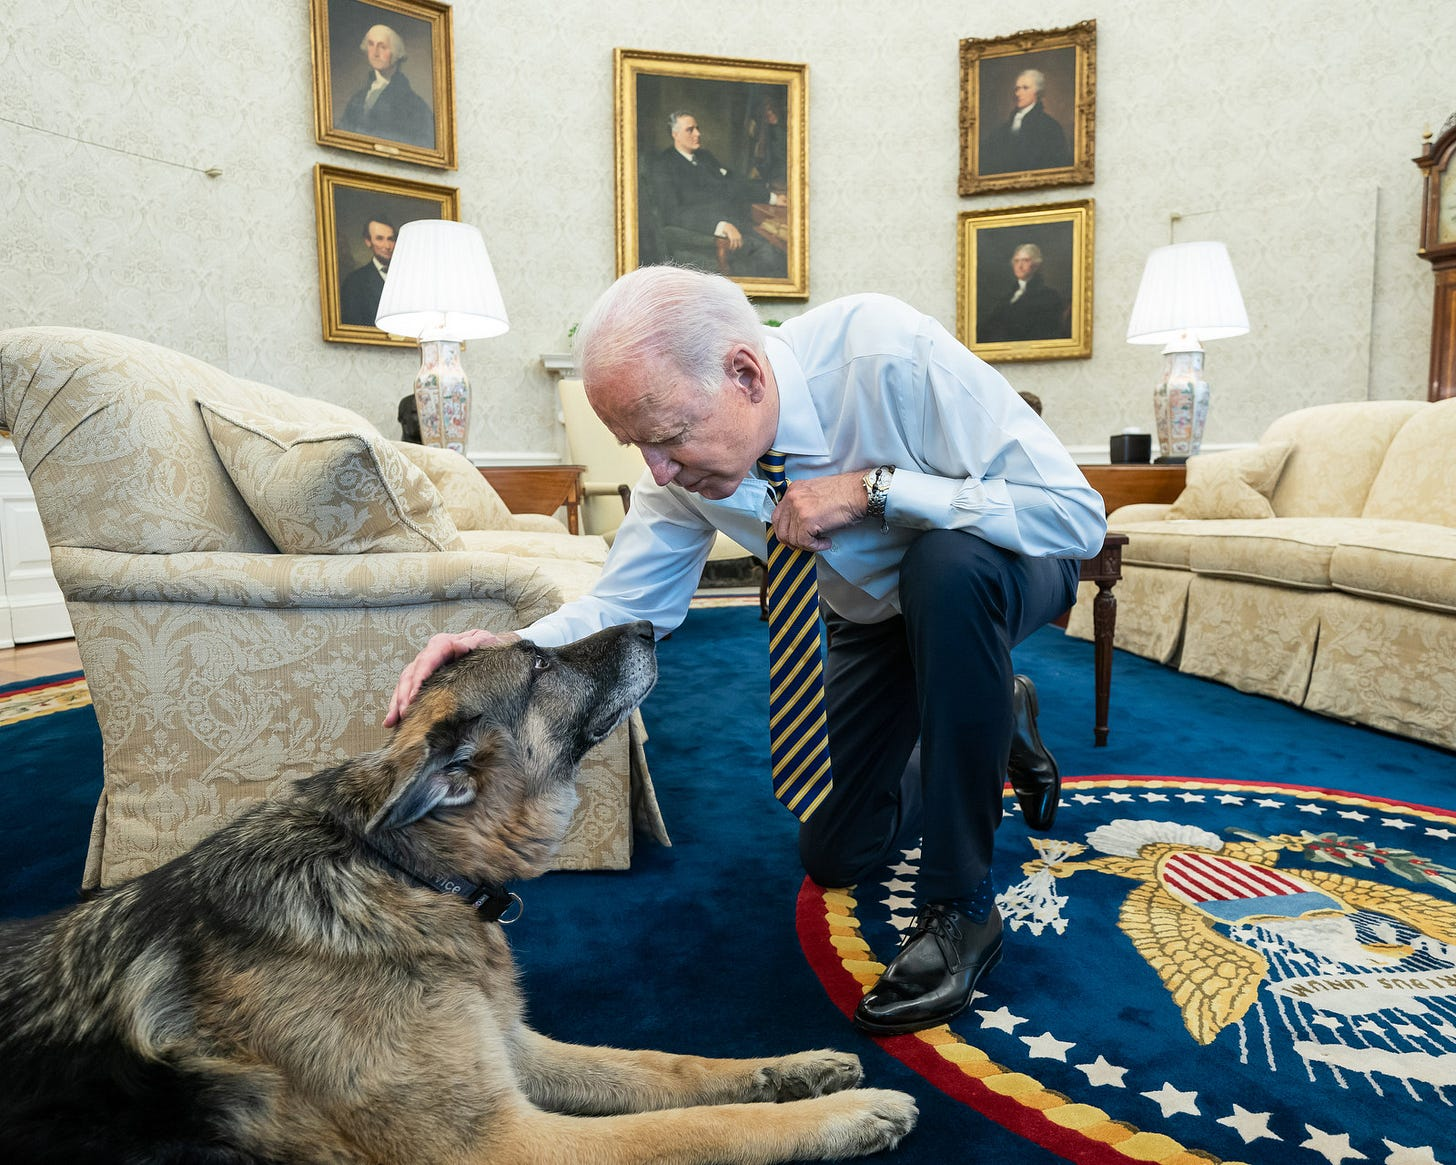 Preisdent Biden with his dog Major in the Oval Office